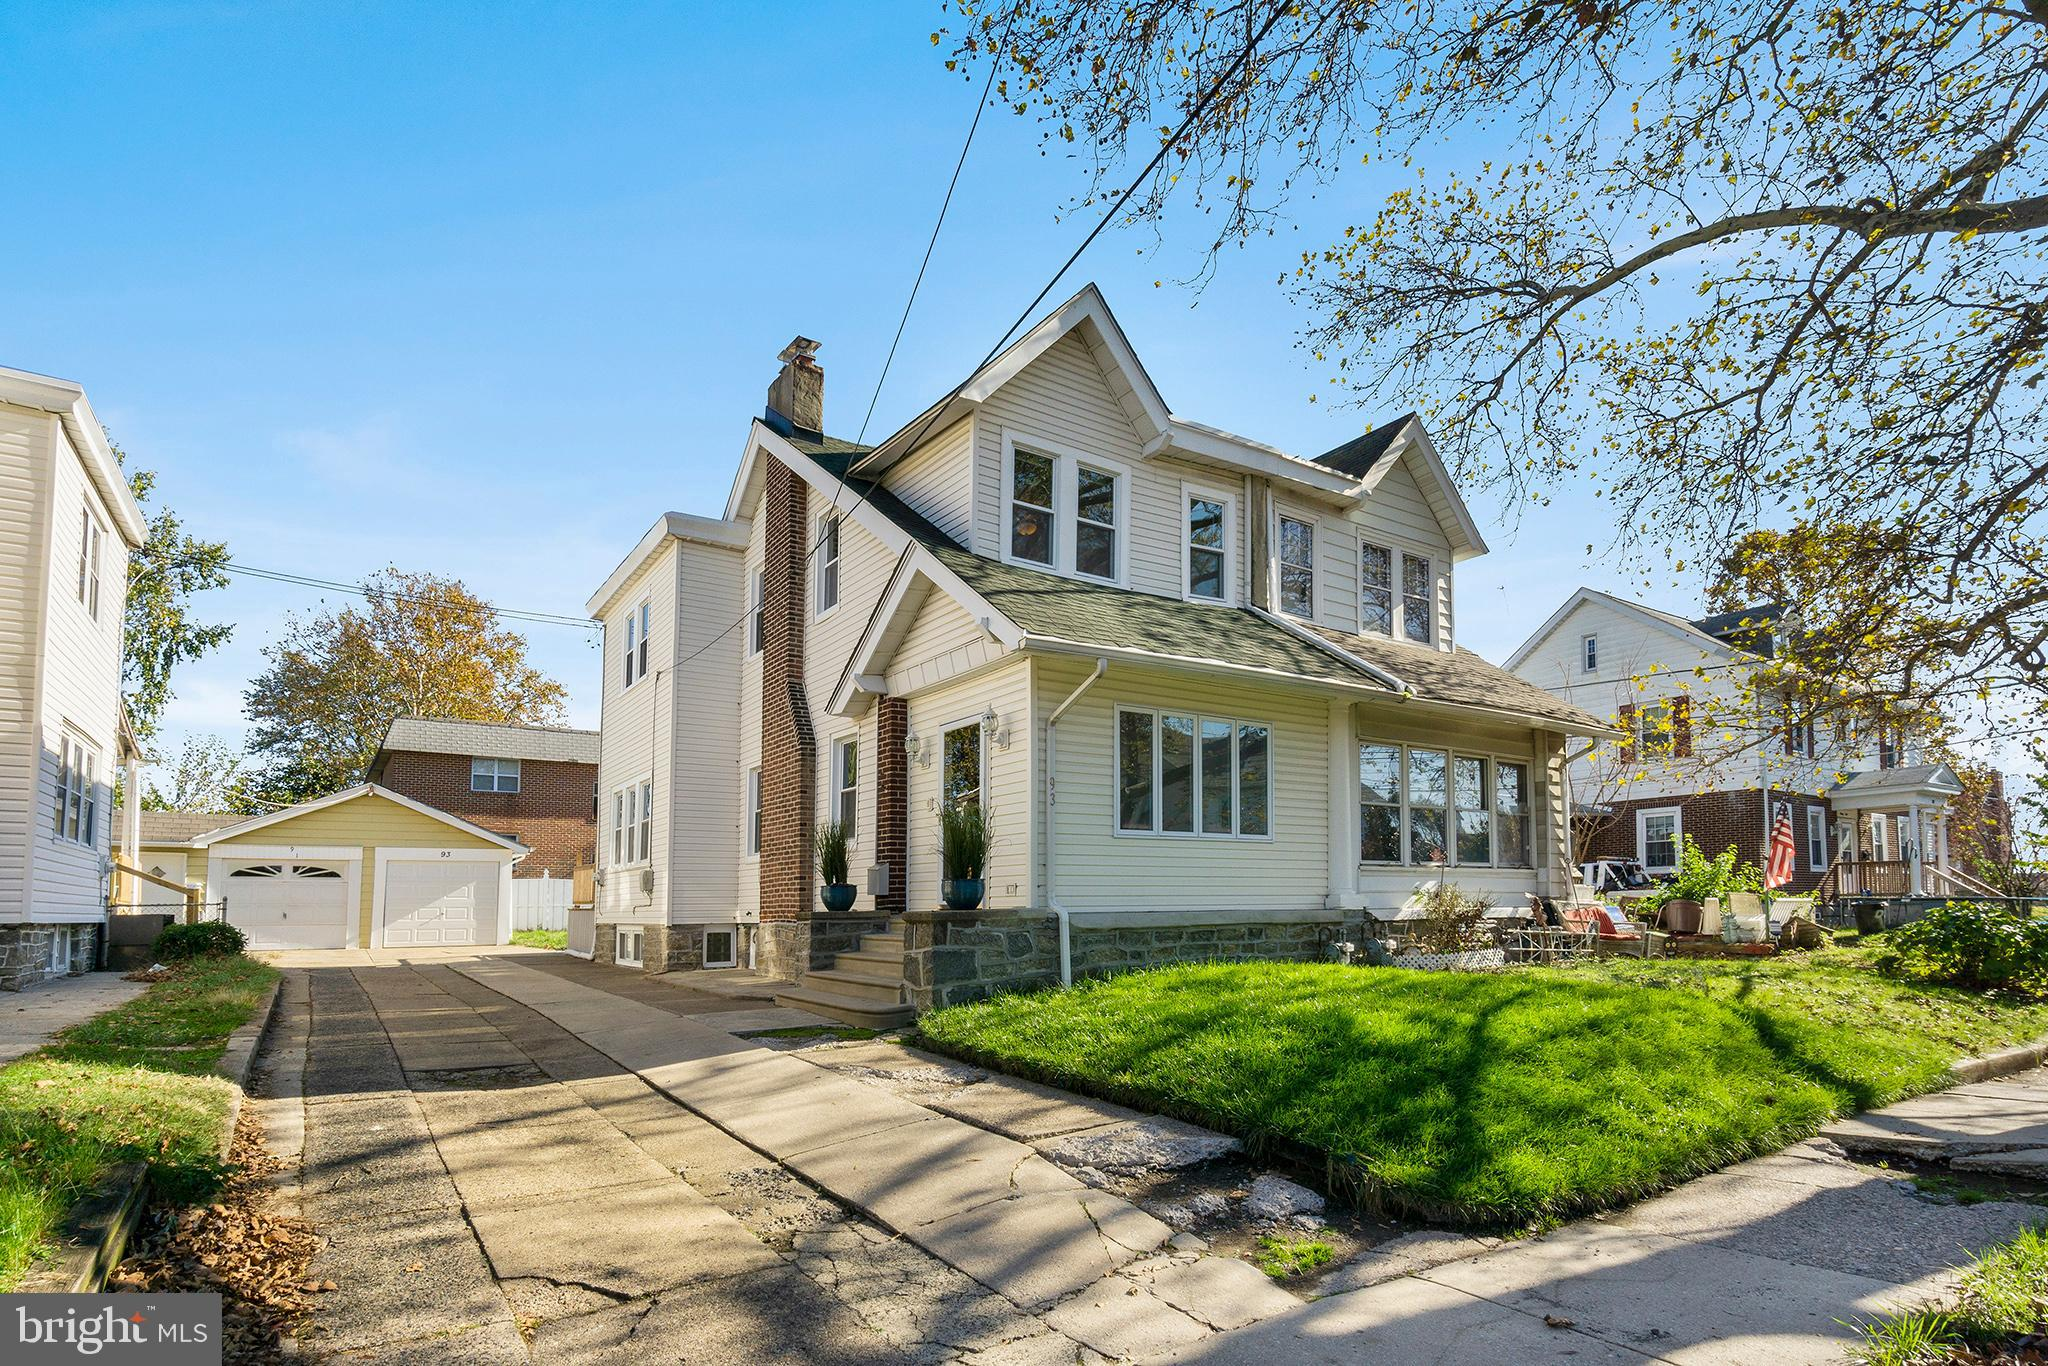 93 KENNEY AVENUE, SHARON HILL, PA 19079